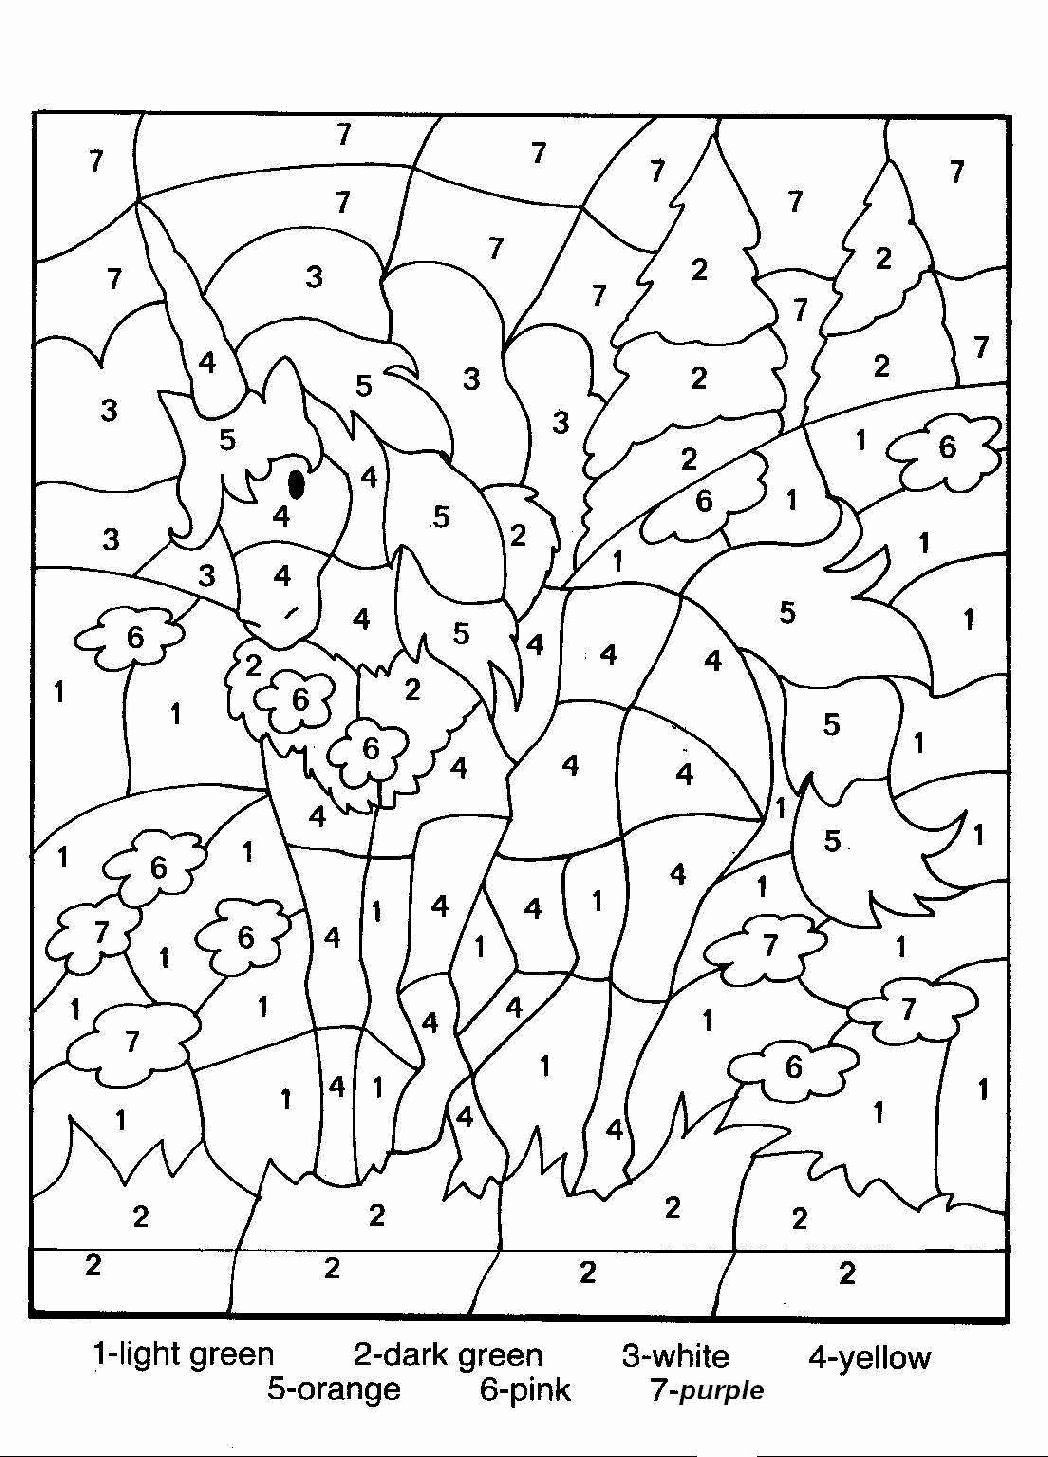 Coloring Worksheets for 2nd Grade Coloring Book Math Coloring Worksheets 2nd Grade Christmas